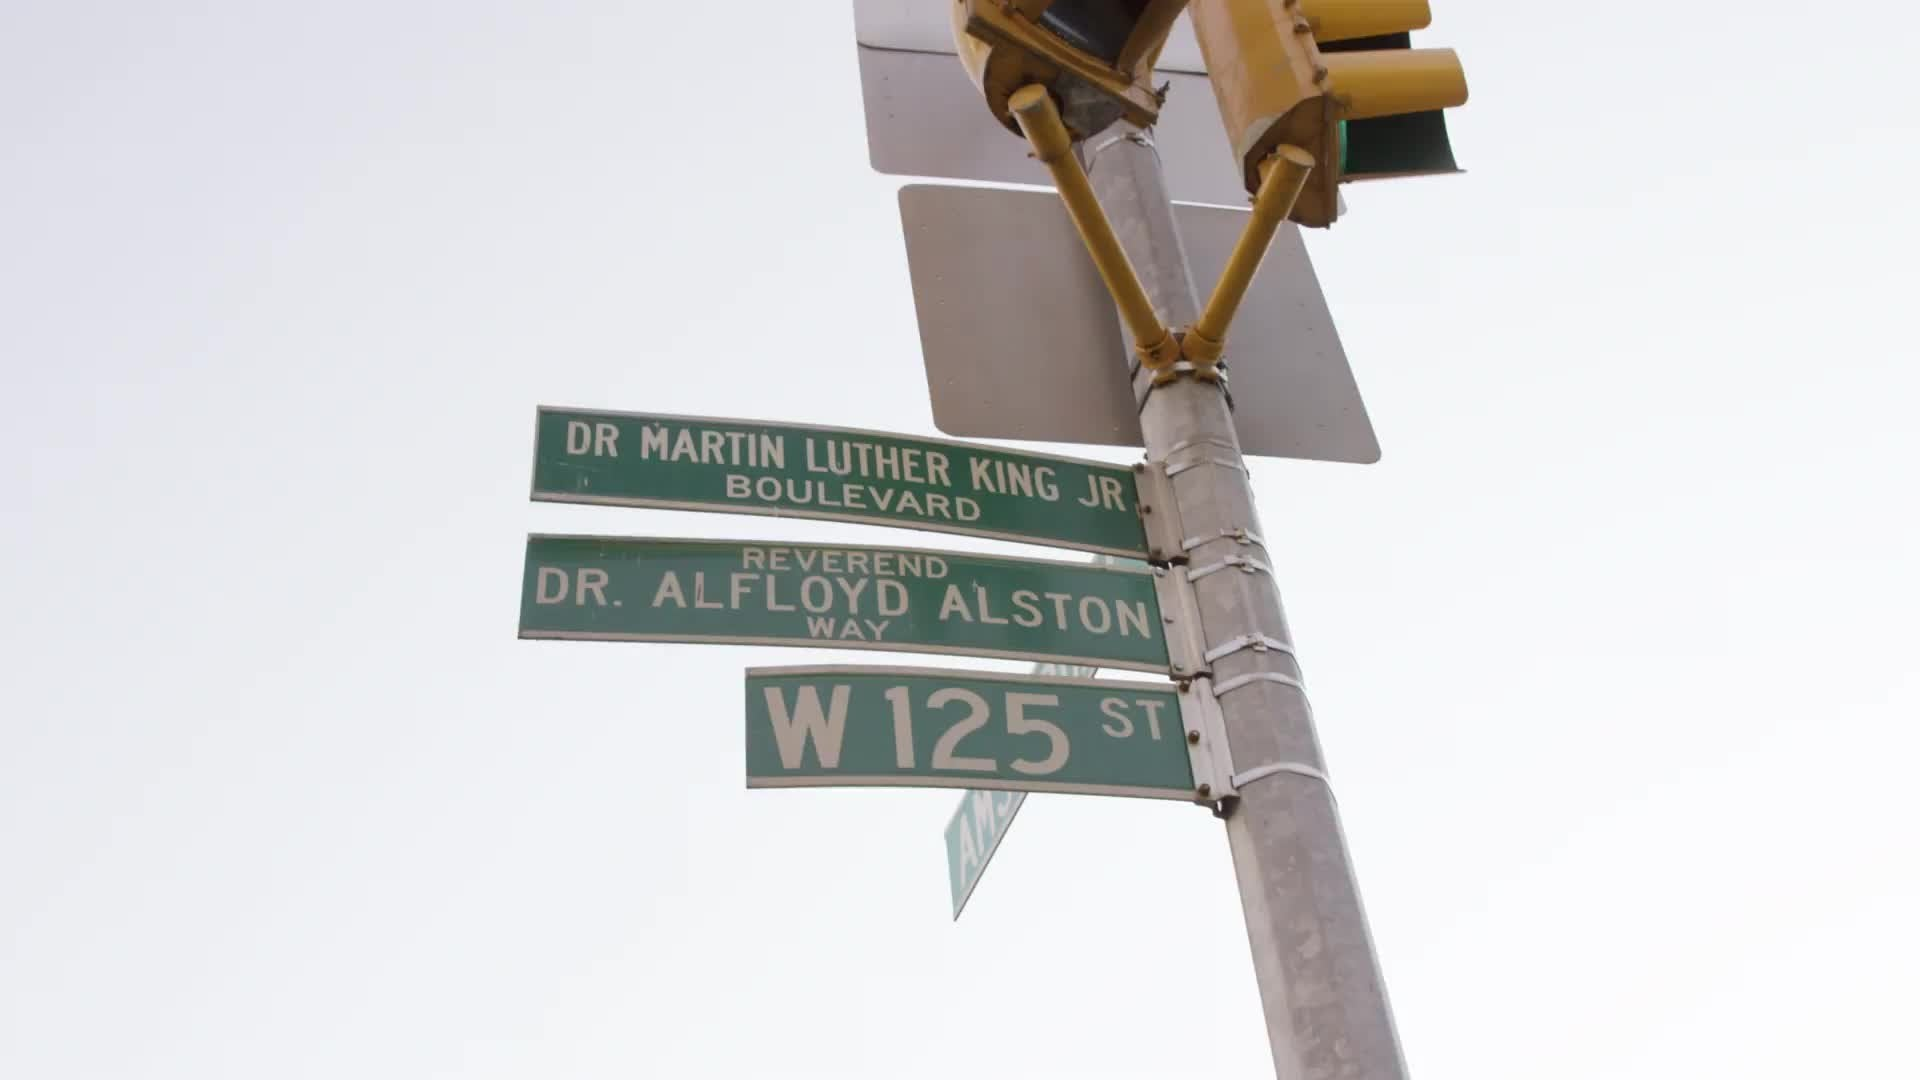 125th street Martin Luther King Jr Blvd sign in Harlem Uptown Manhattan close-up 4K NYC